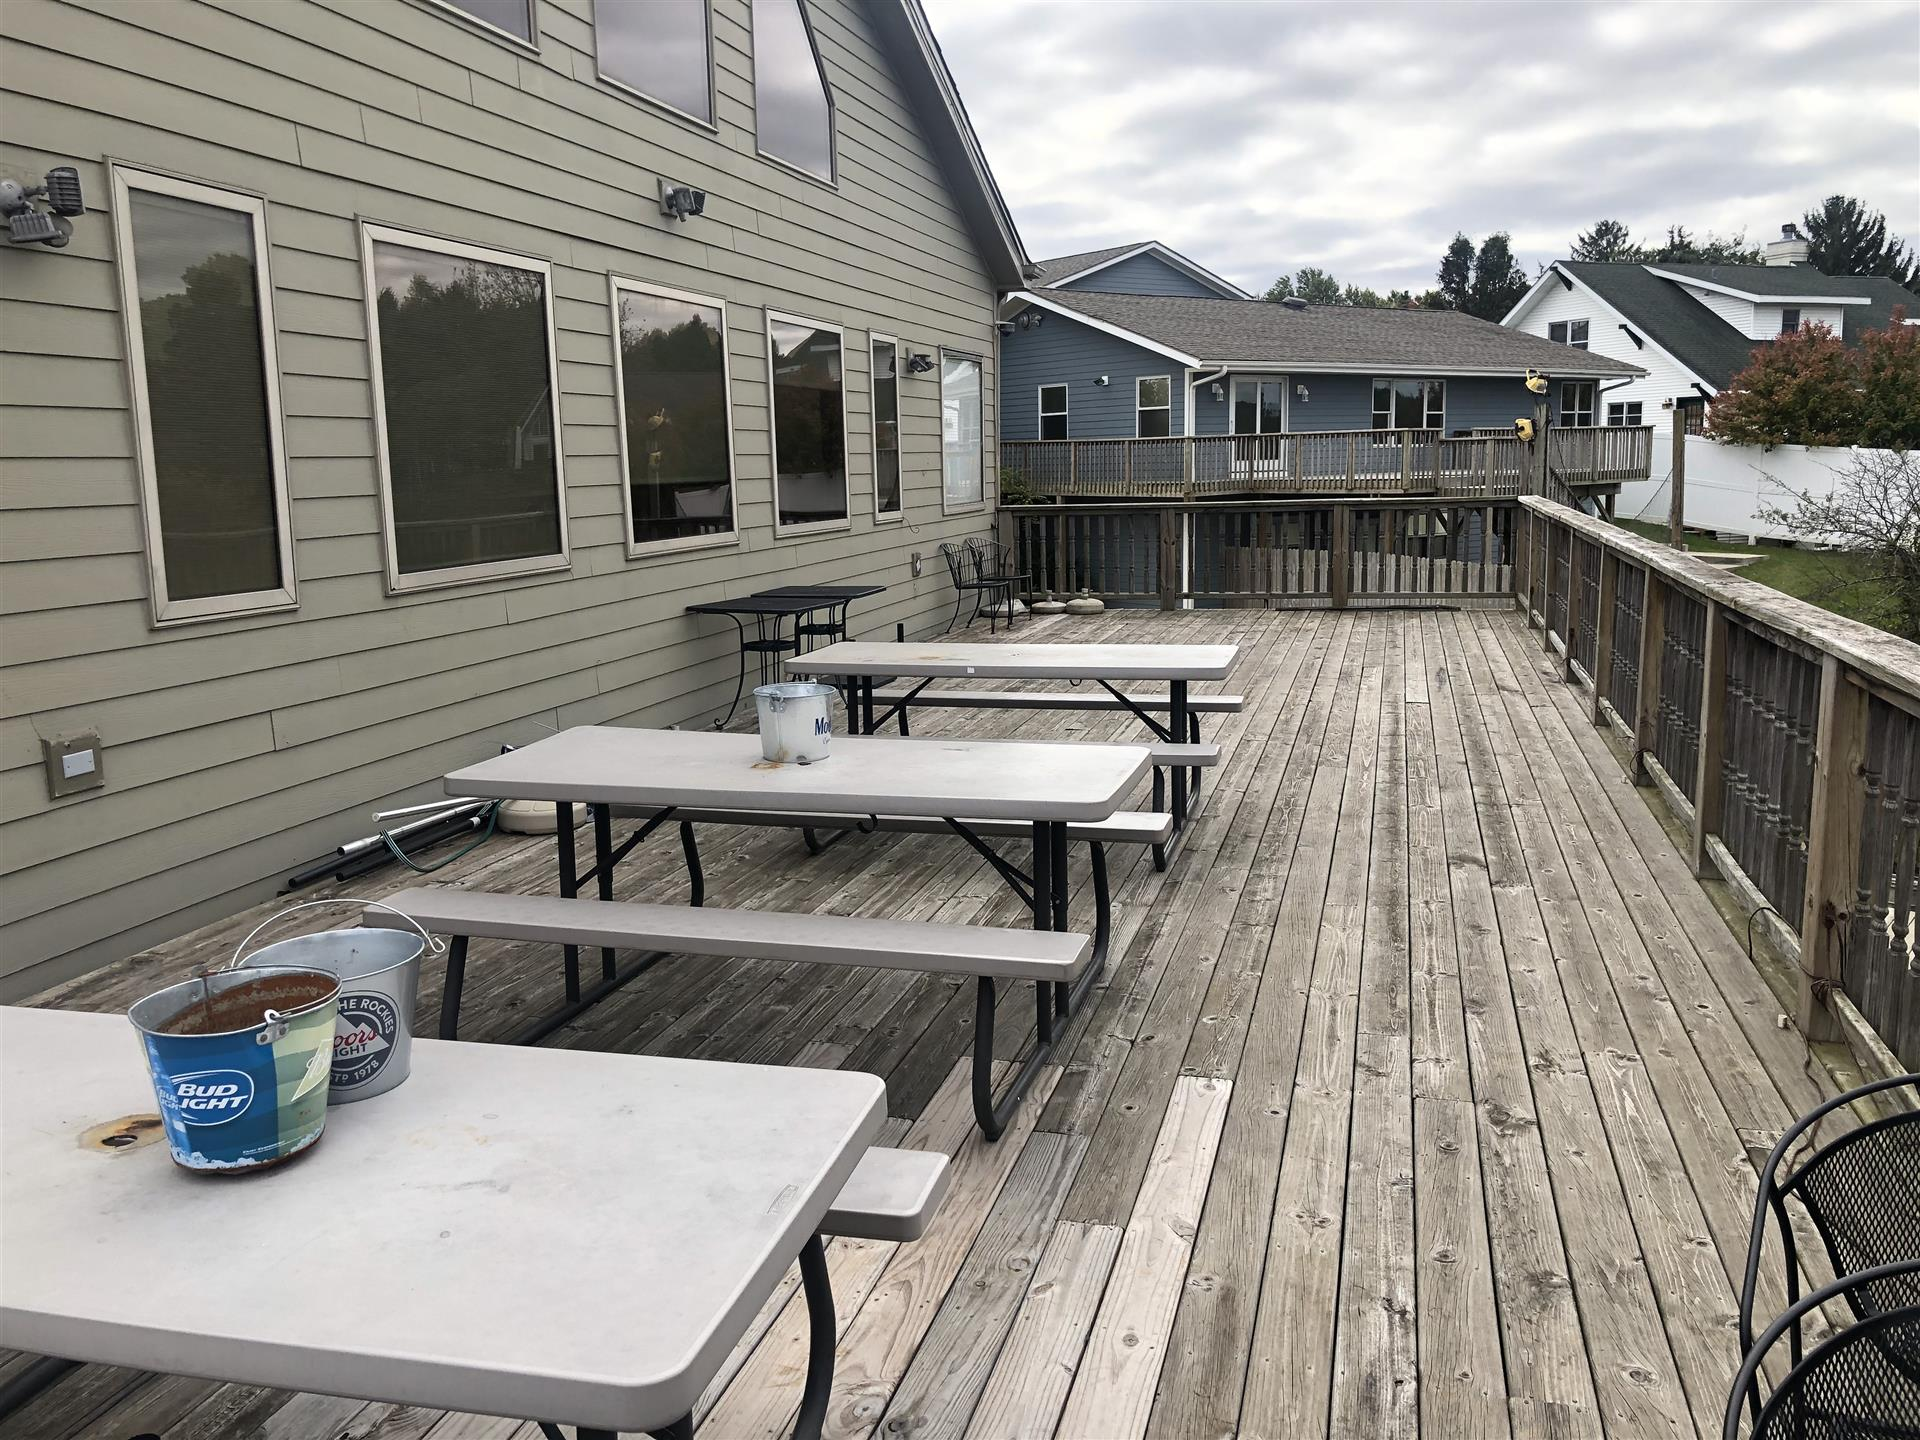 outdoor tables on a deck